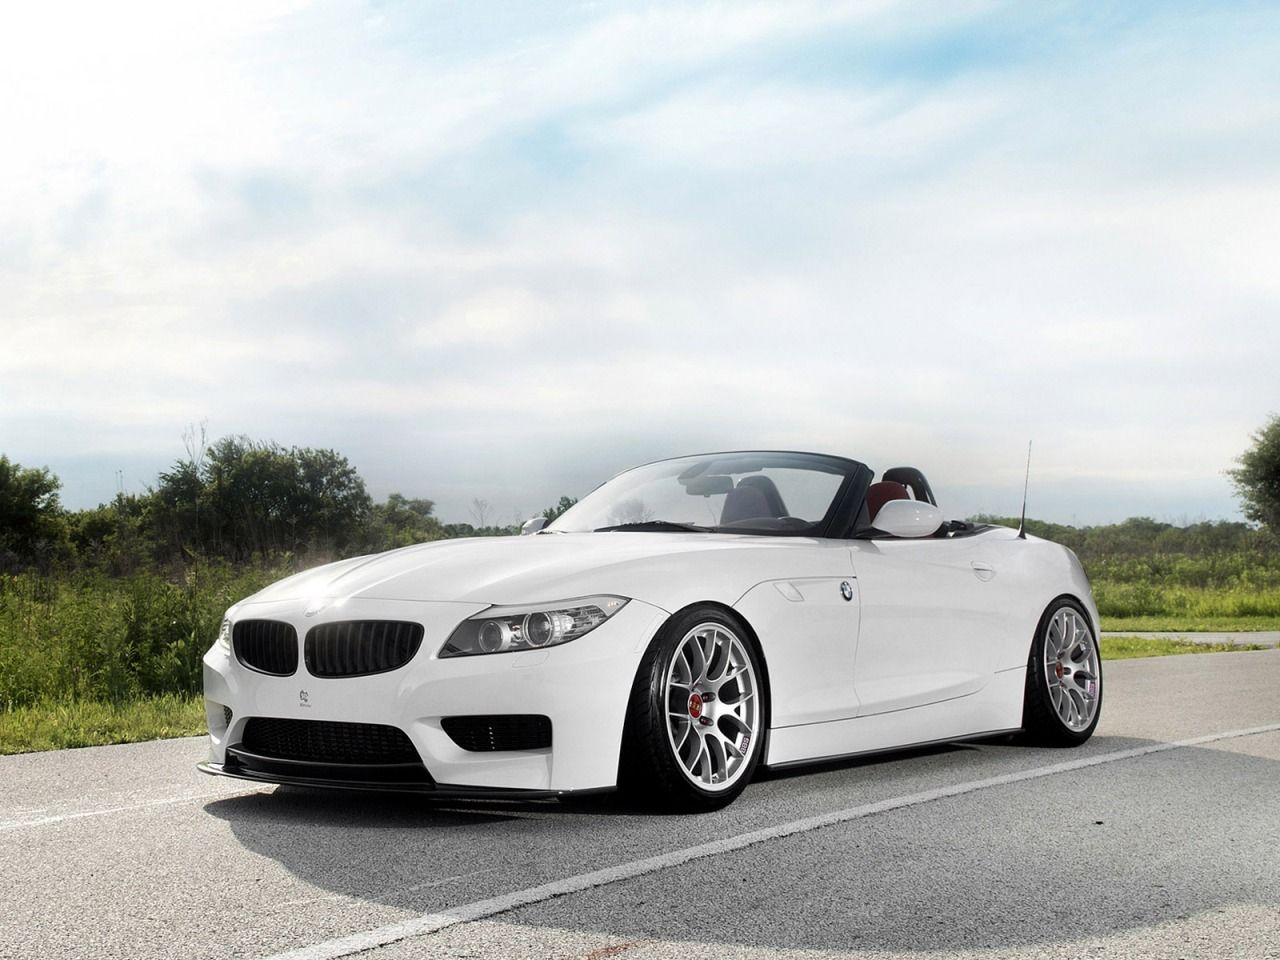 bmw e89 z4 white bmw roadsters coupes pinterest bmw bmw z4 and cars. Black Bedroom Furniture Sets. Home Design Ideas